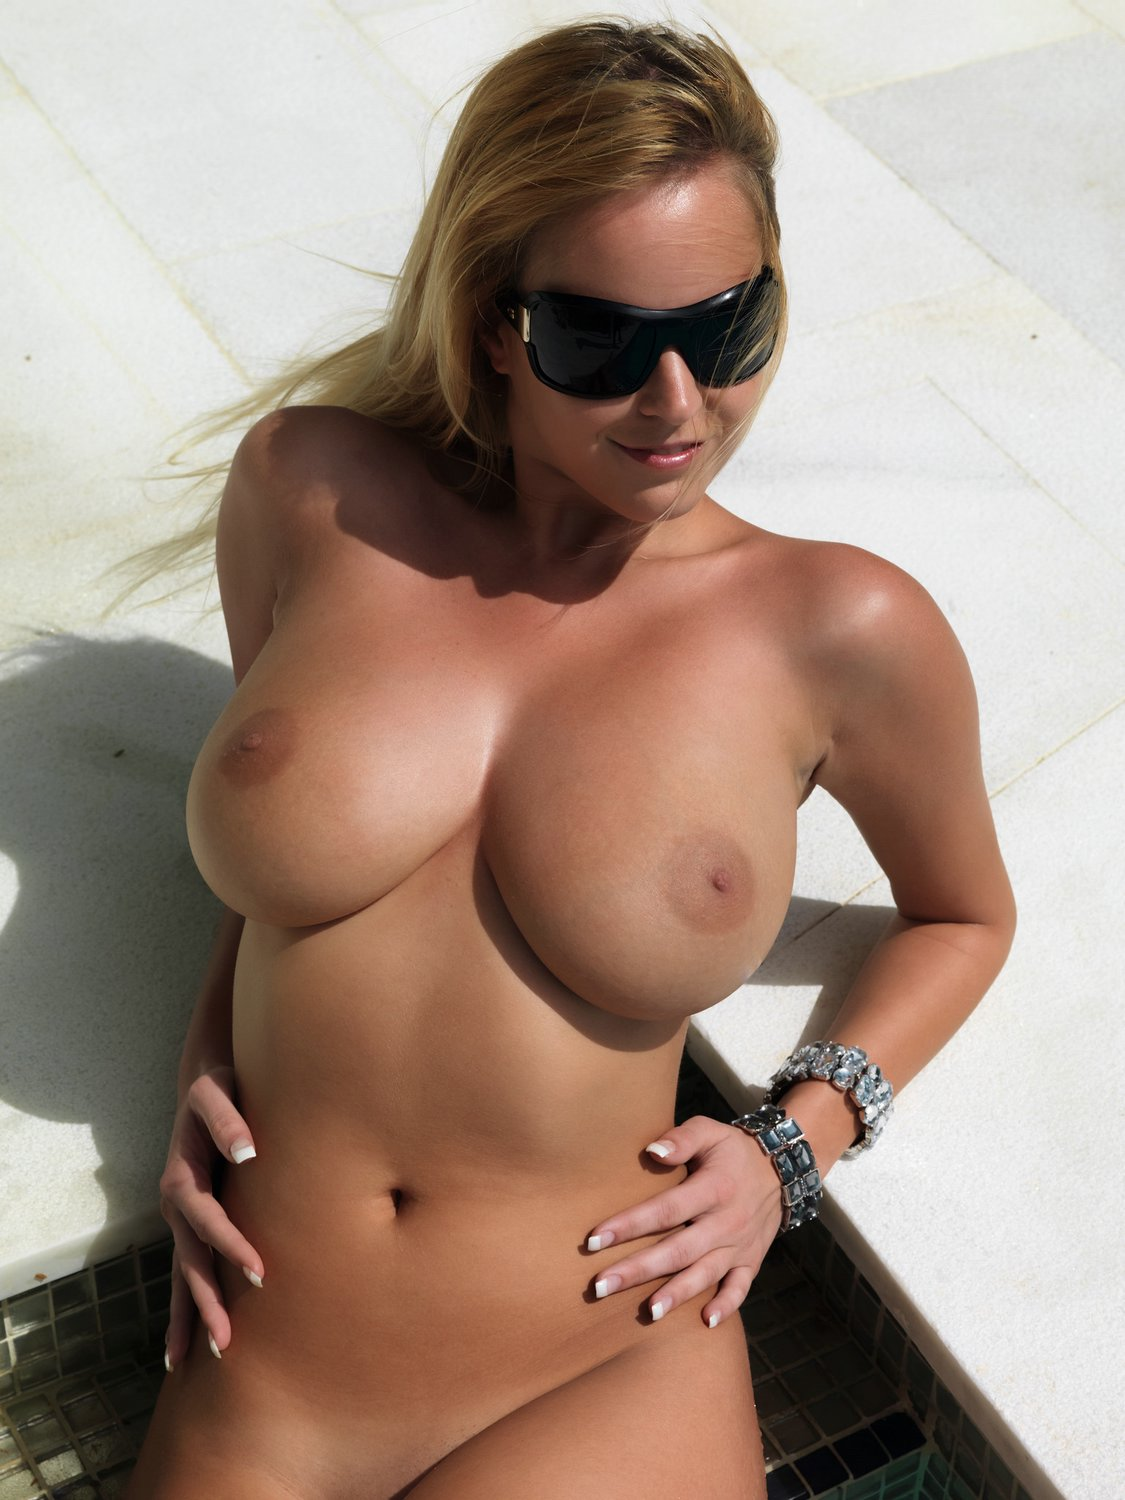 Offense reccomend hottest nude women ever